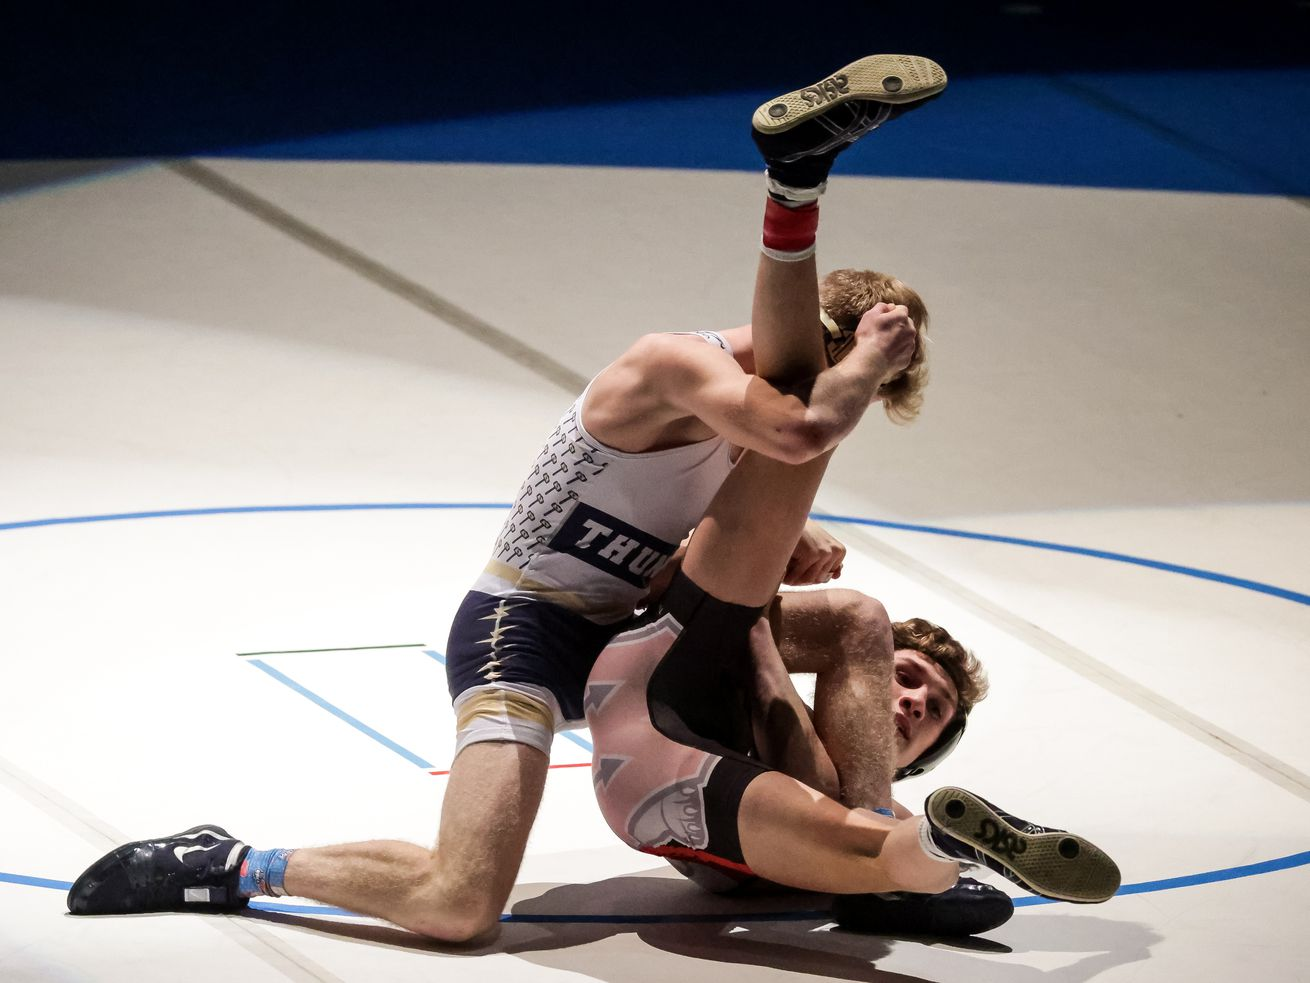 West's Drew Lang, right, defeats Westlake's Jacob Finlinson in the 132-pound finals match at the 6A wrestling state championship at Corner Canyon High School in Draper on Friday, Feb. 19, 2021.